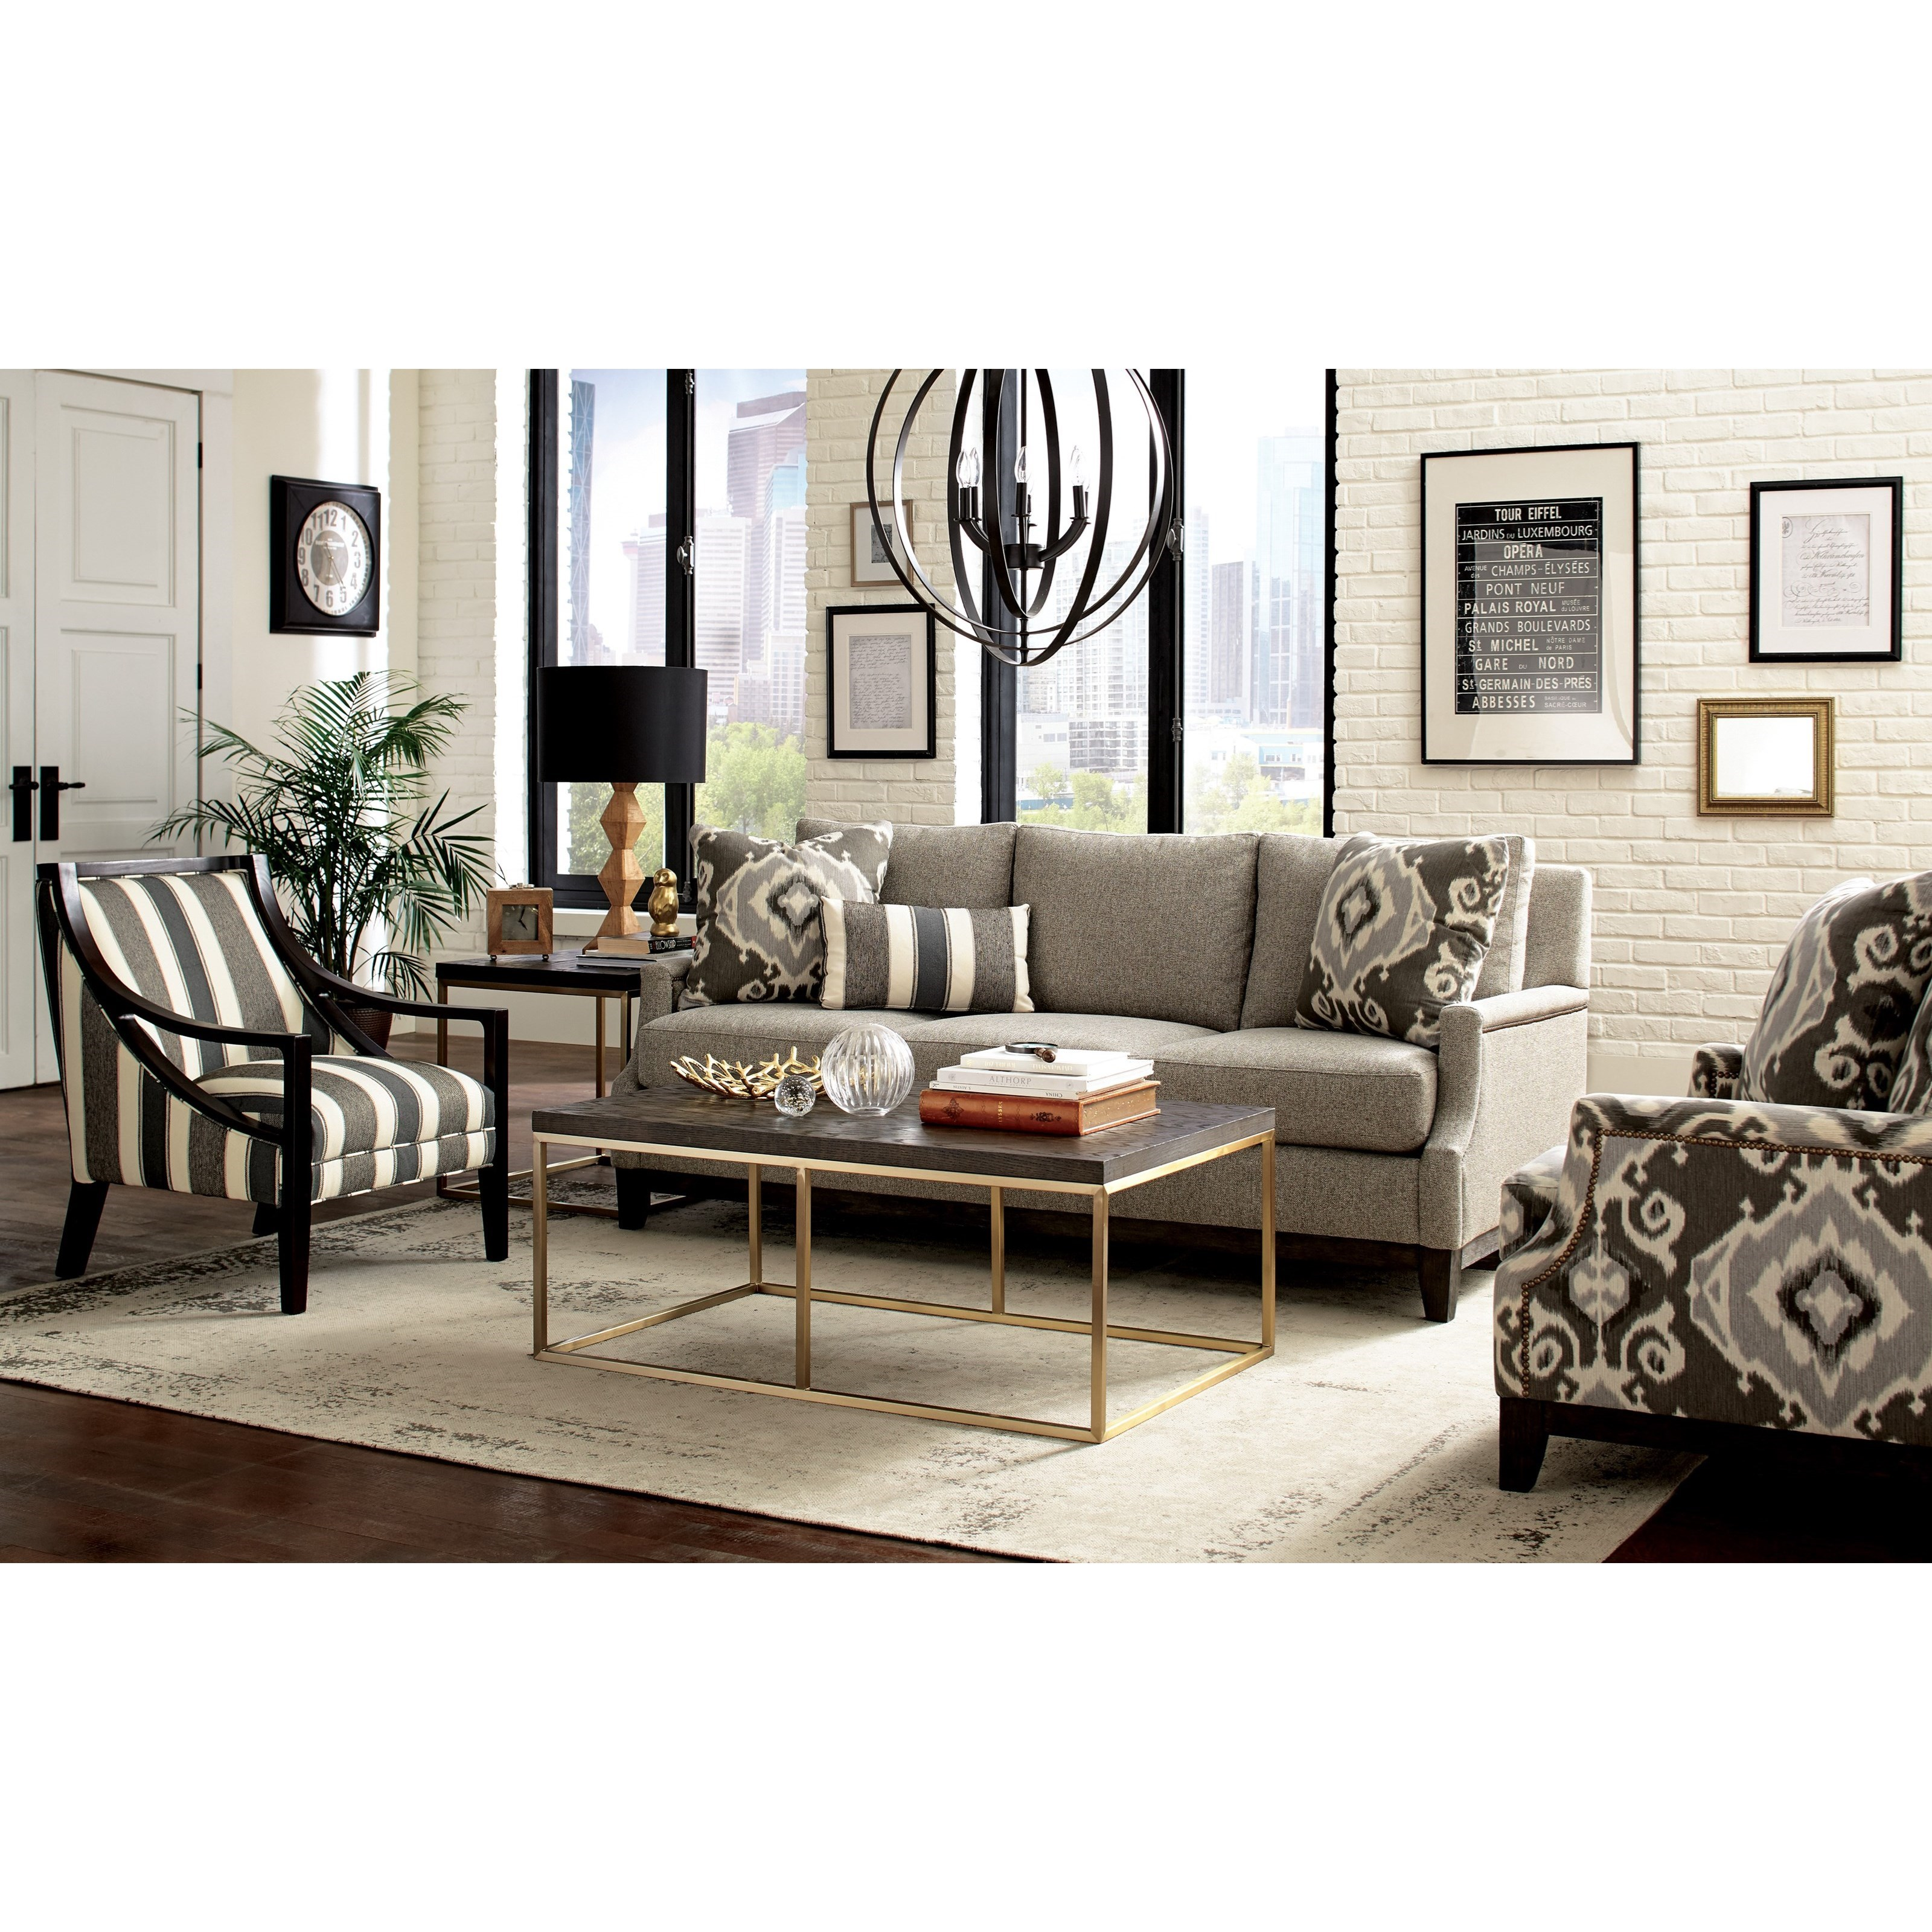 Craftmaster 775750-775850-775950-77650 Living Room Group - Item Number: 775850 Living Room Group 1